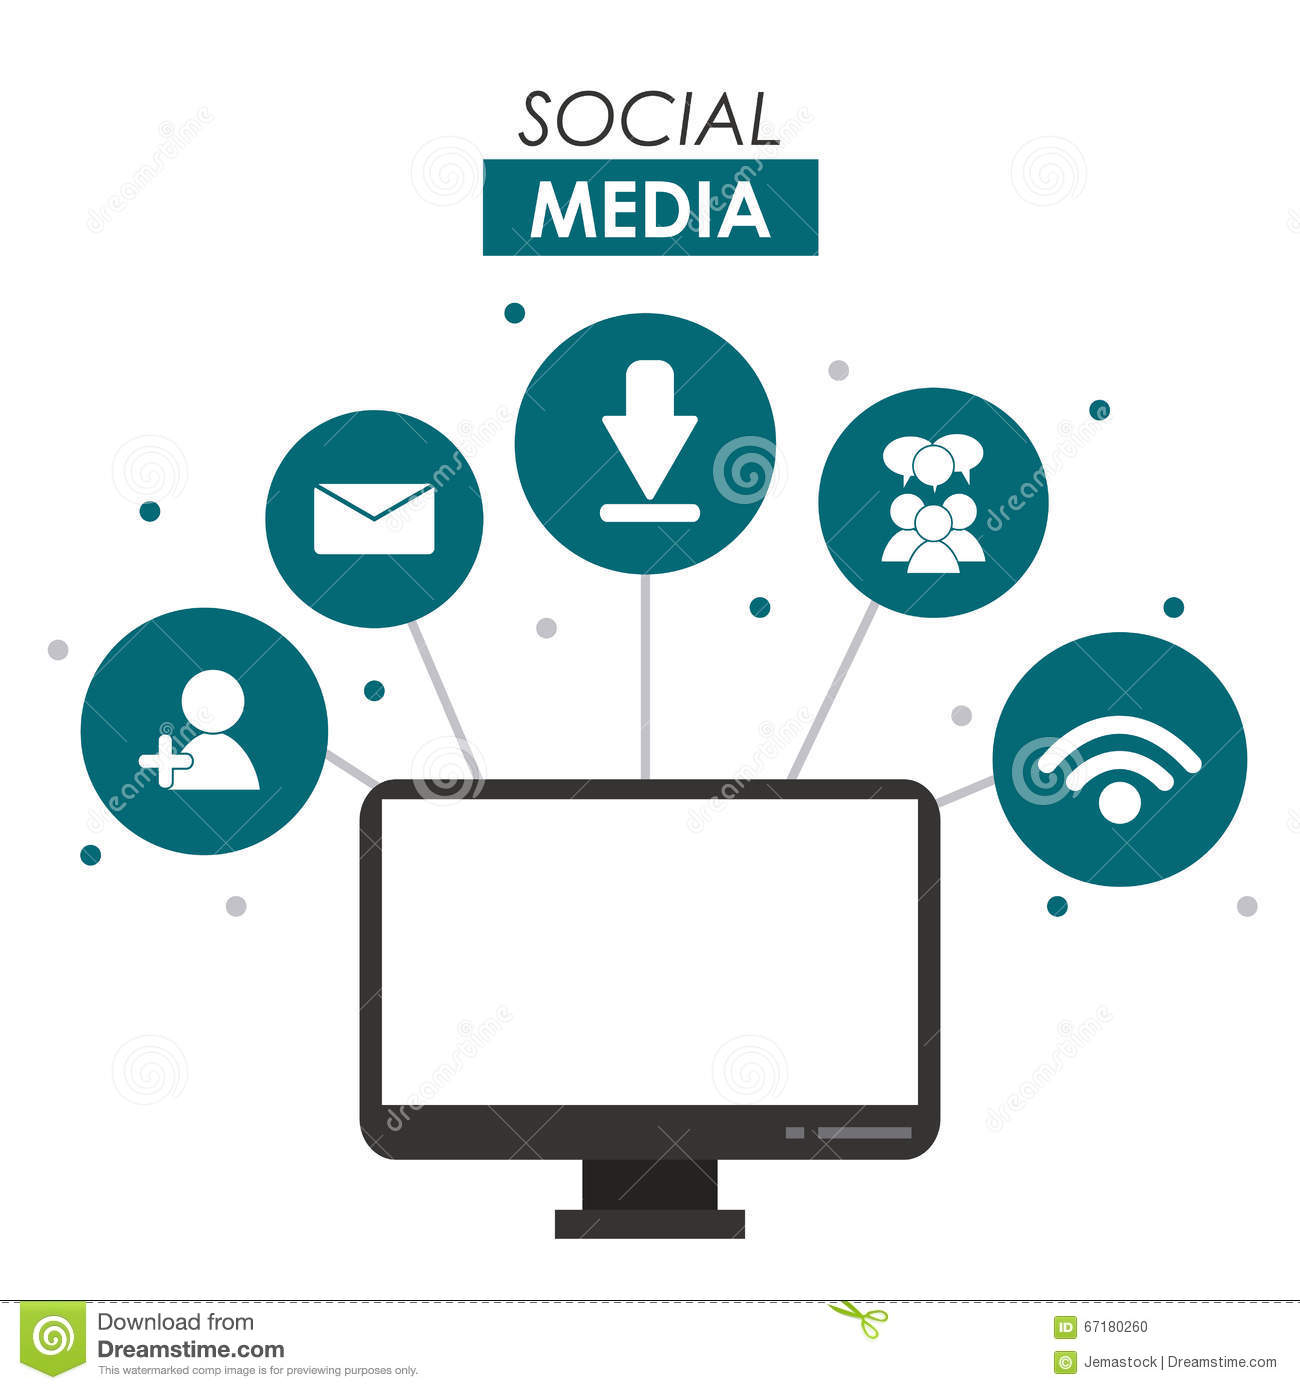 Social Media Design Stock Vector - Image: 67180260